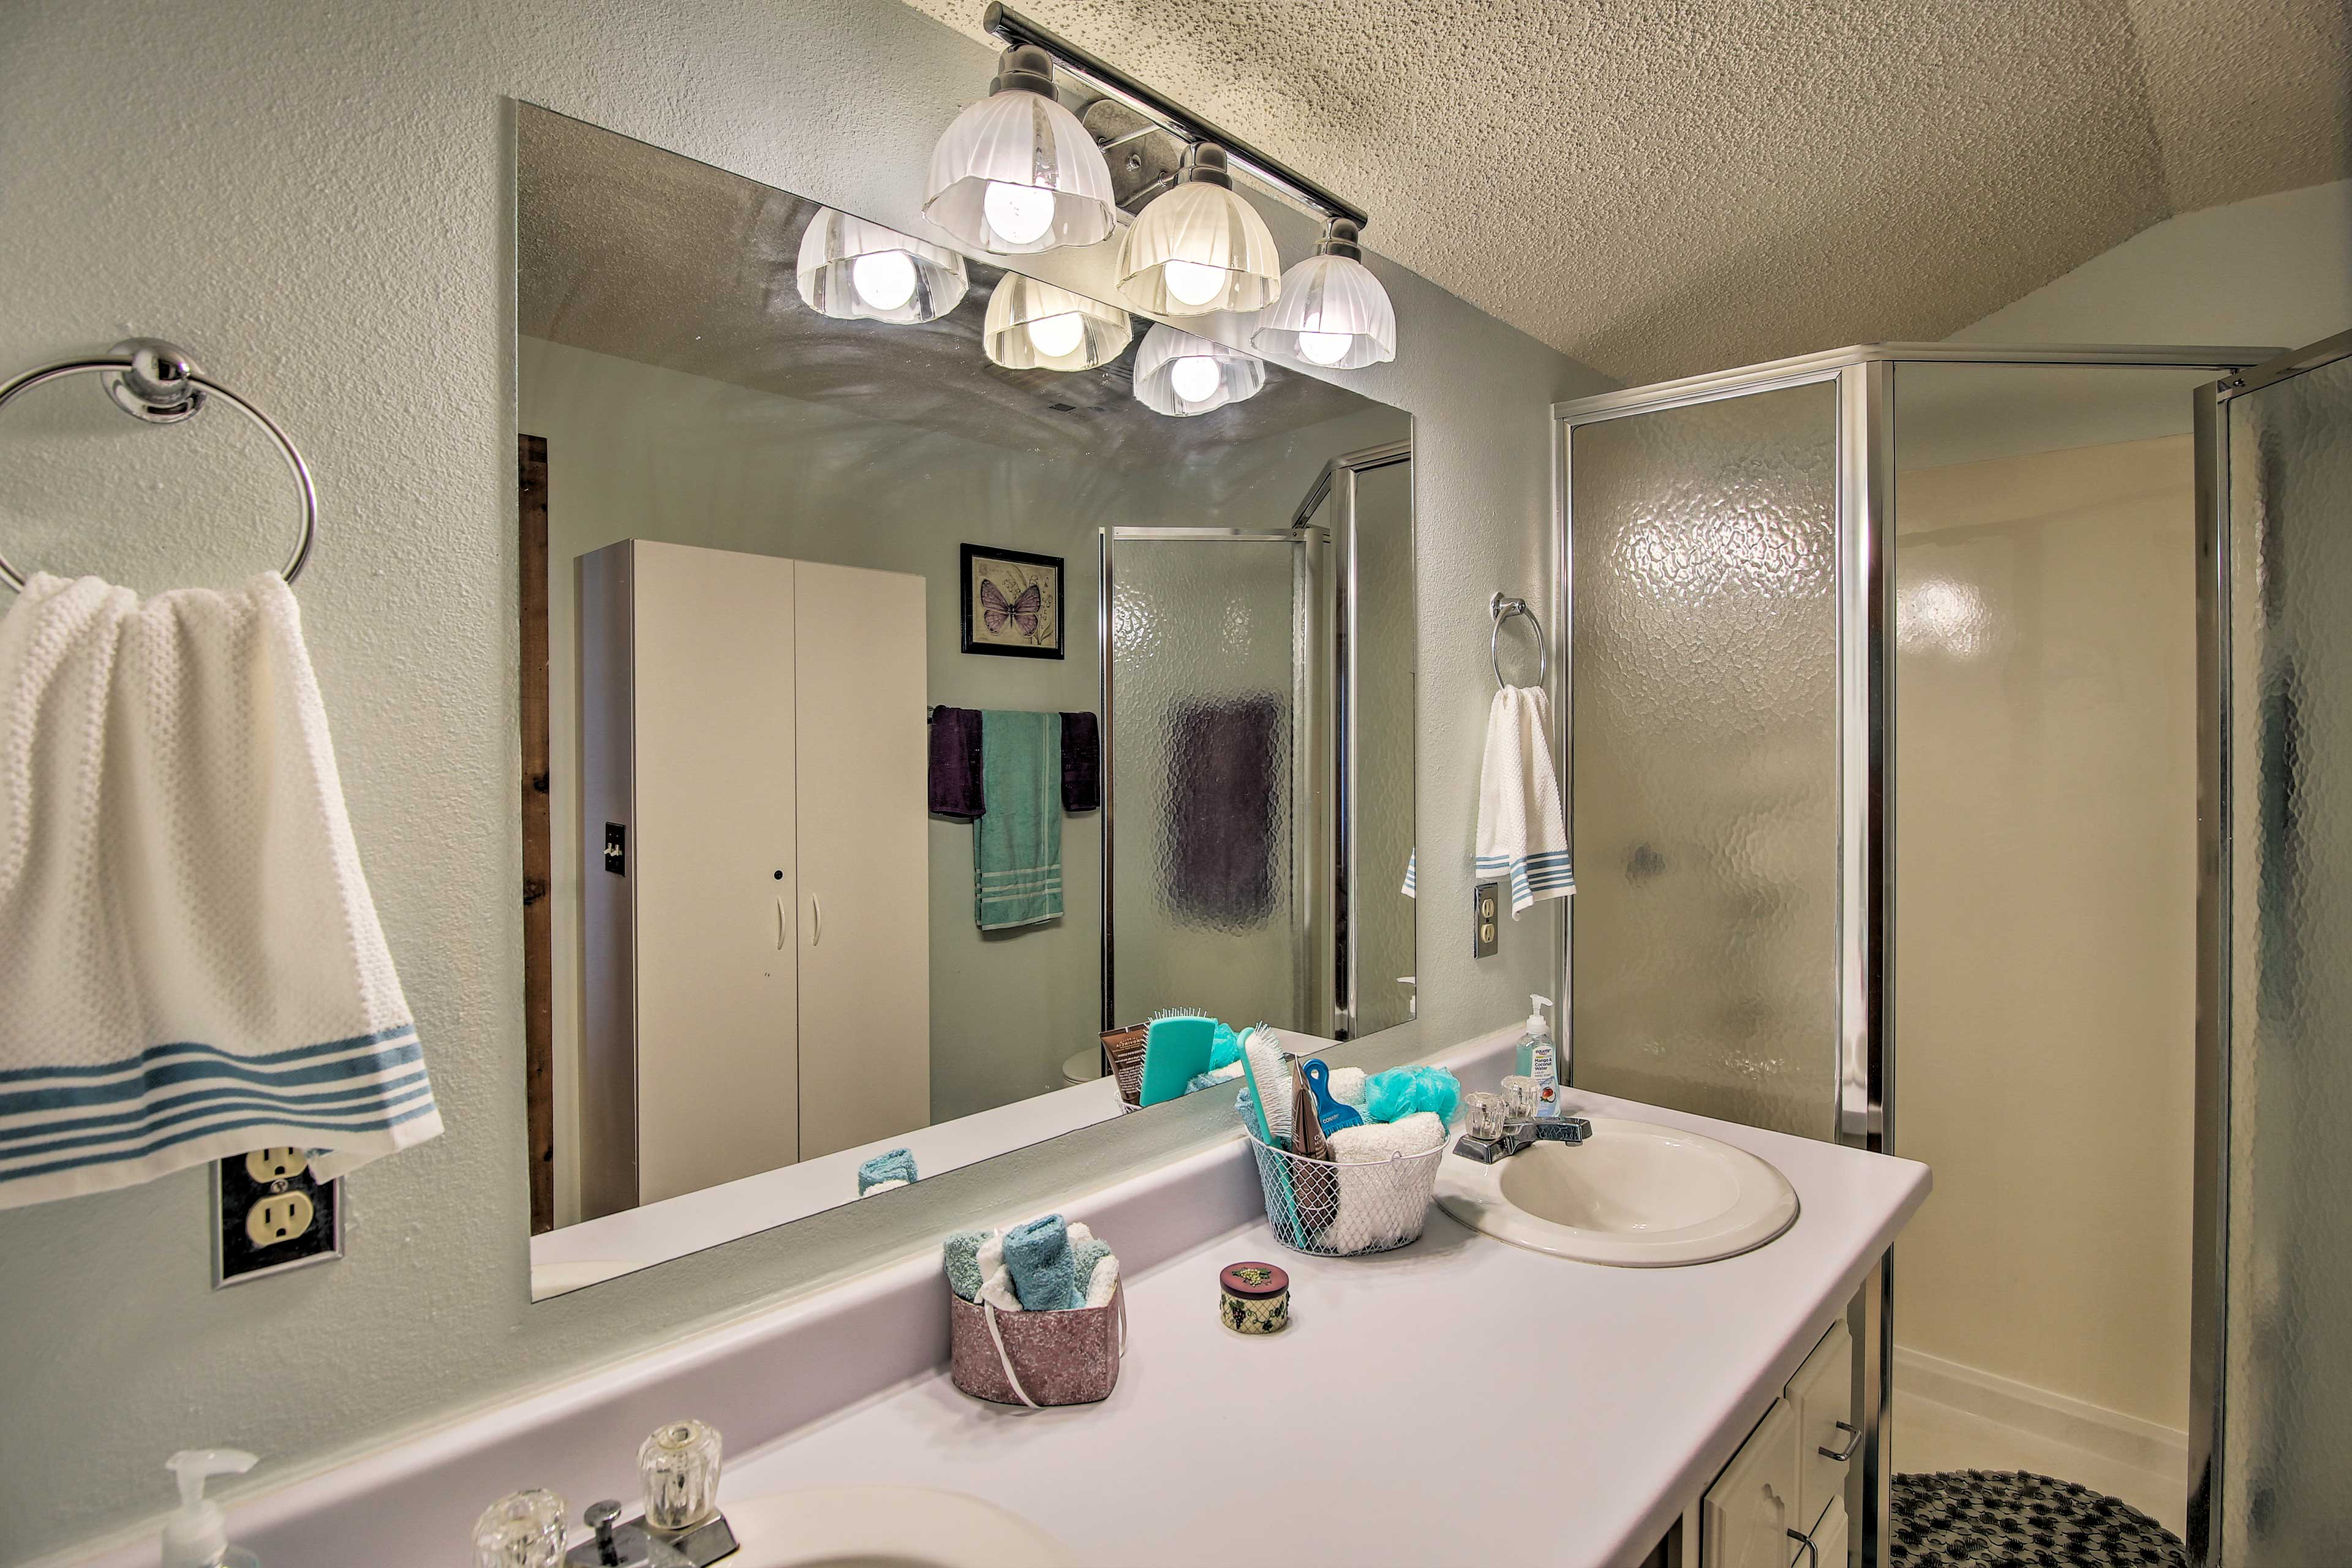 Freshen up at the dual sink bathroom counter.